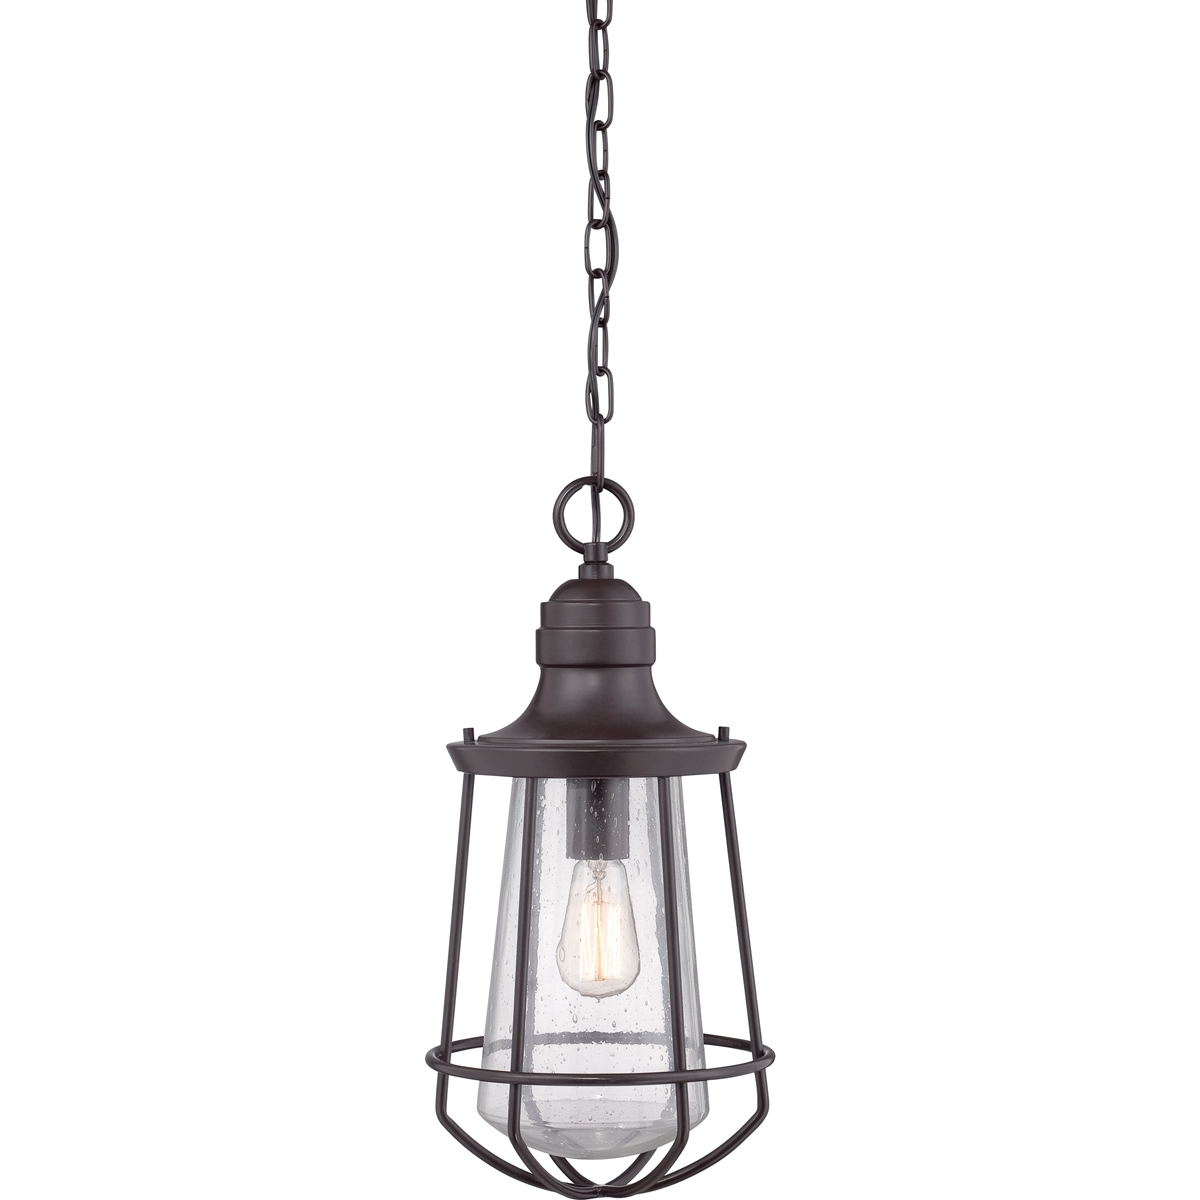 Fashionable Outdoor Hanging Light Fixtures Trends And Industrial Lights Pictures Pertaining To Outdoor Hanging Pendant Lights (View 8 of 20)